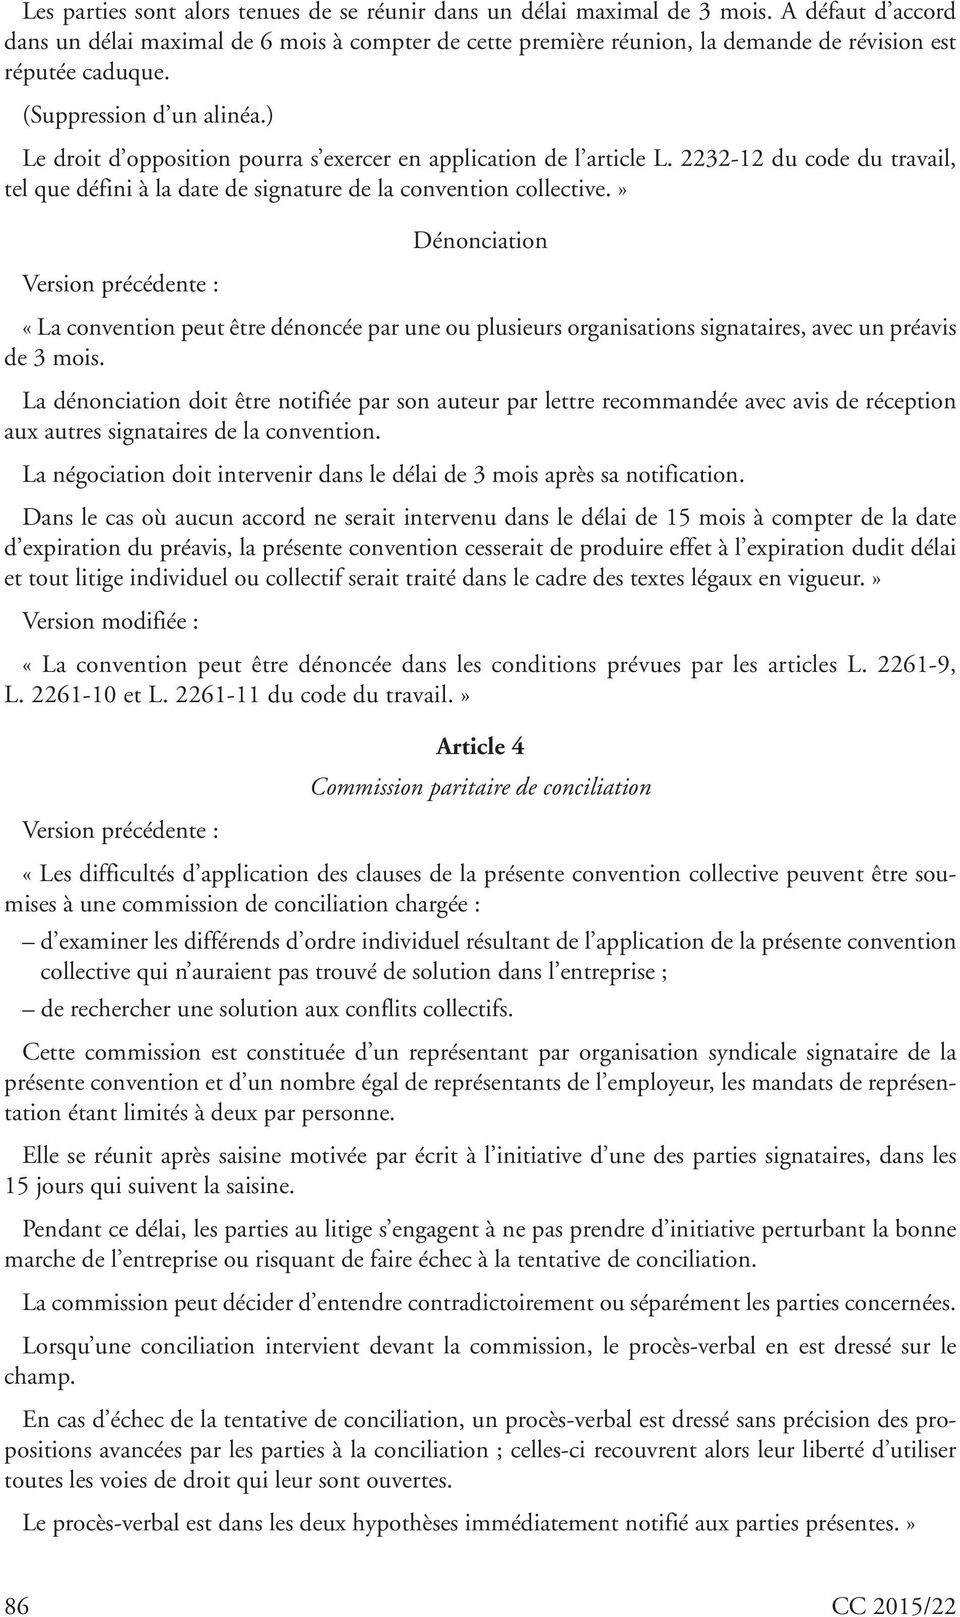 ) Le droit d opposition pourra s exercer en application de l article L. 2232-12 du code du travail, tel que défini à la date de signature de la convention collective.